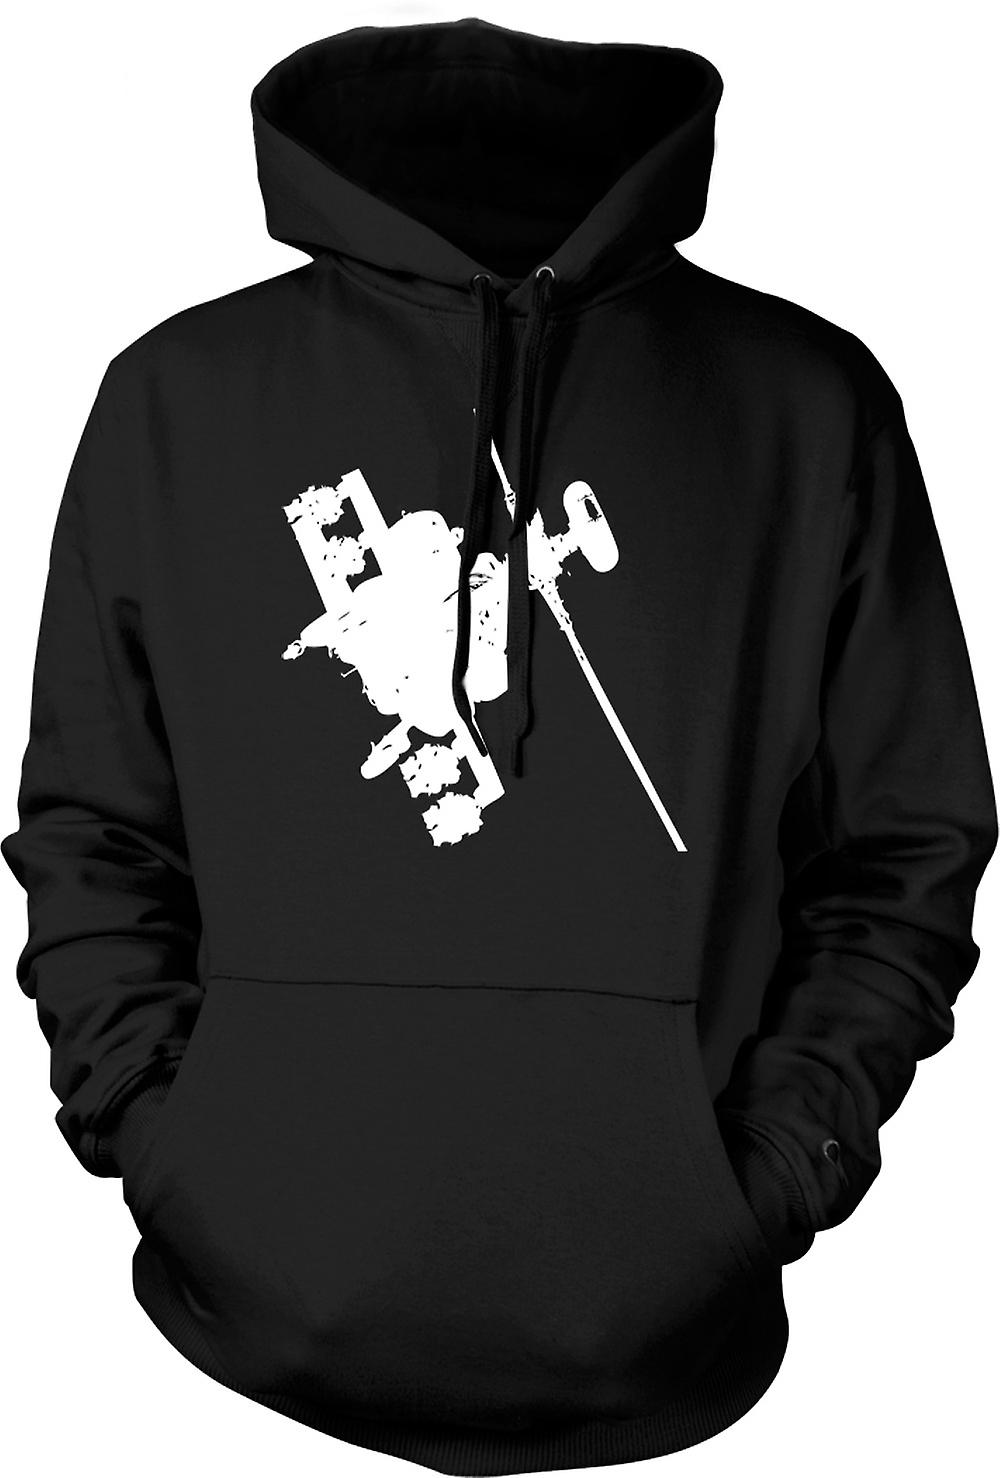 Mens Hoodie - Apache Helicopter Flying - War